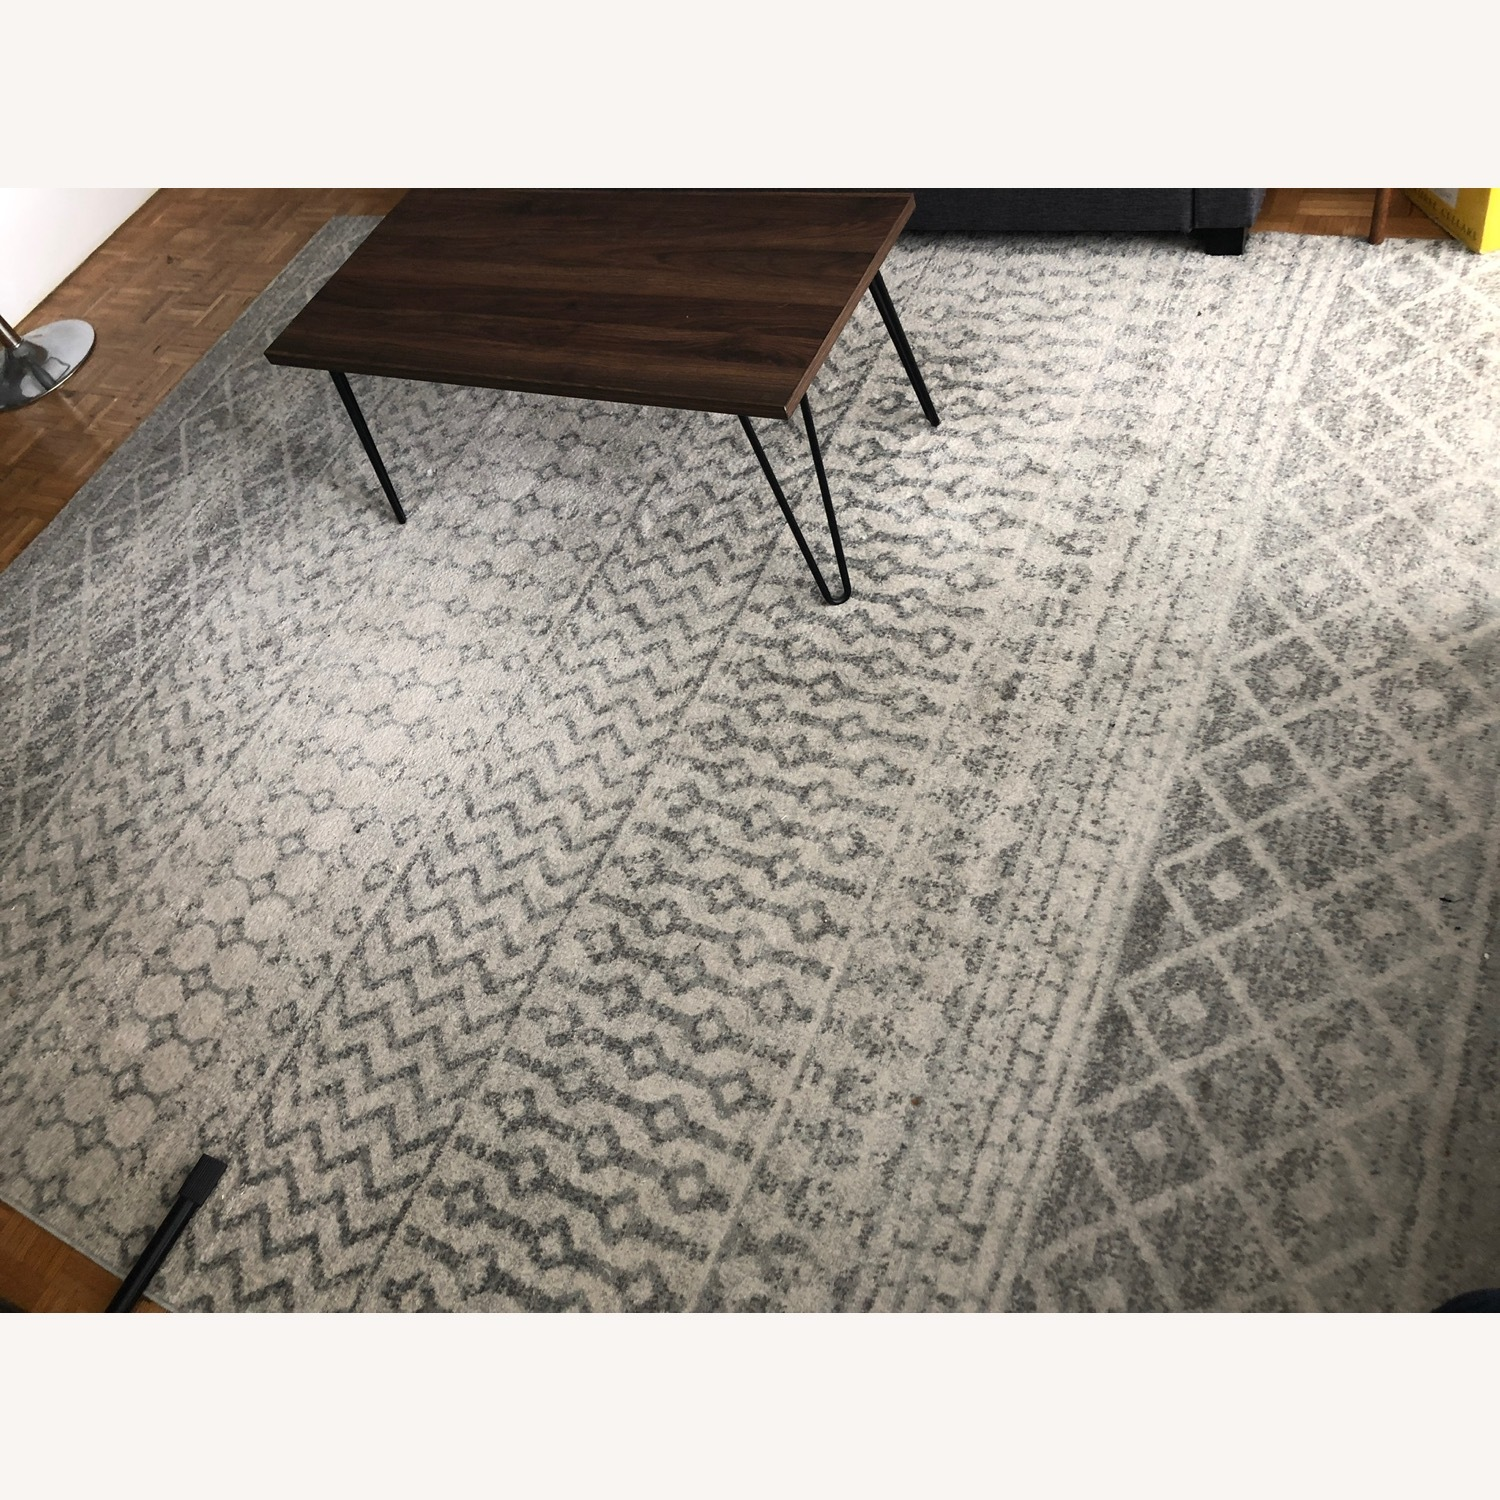 Bohemian Area Rug Antique Silver on White - image-4